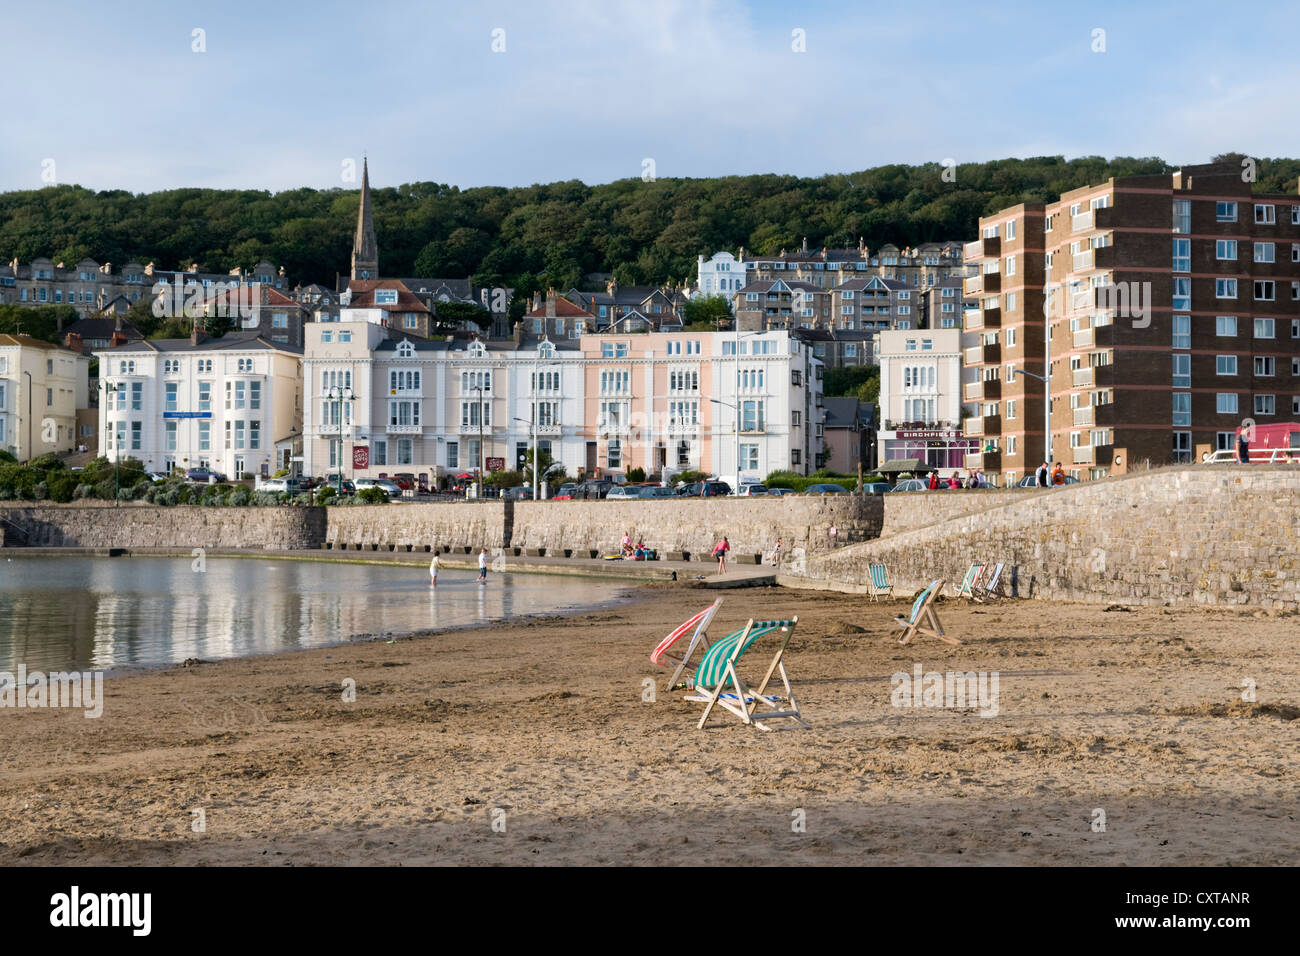 Weston Super Mare beach and sea front, England, UK - Stock Image